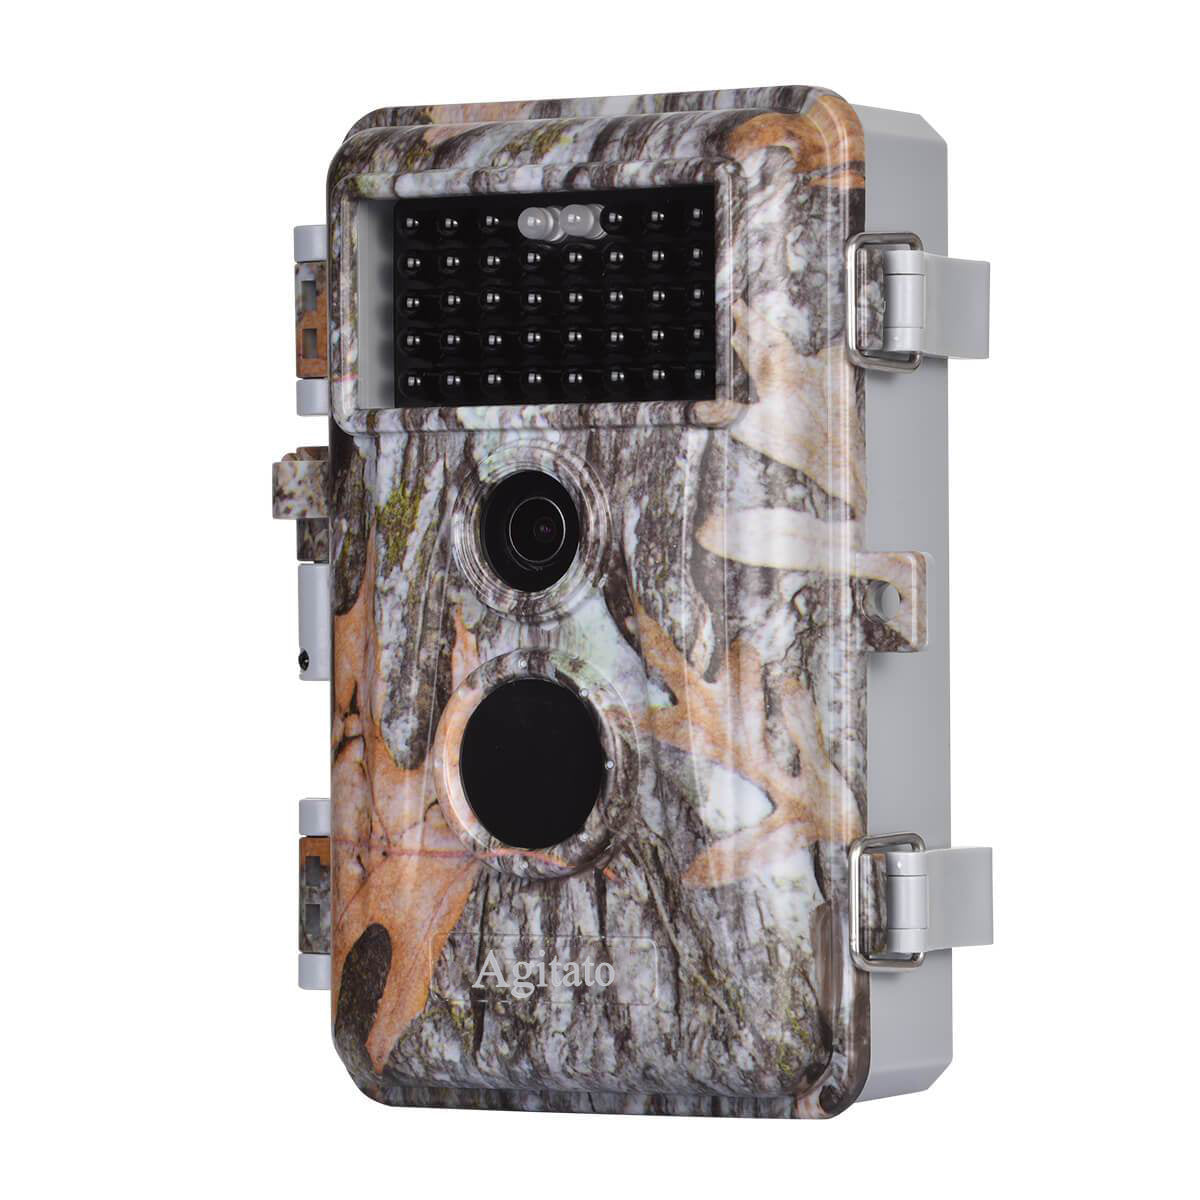 5-Pack 16MP 1080P Game Trail Deer Hunting Cameras Night Vision No Glow Infrared Motion Activated IP66 Waterproof 0.6S Trigger Photo & Video Model